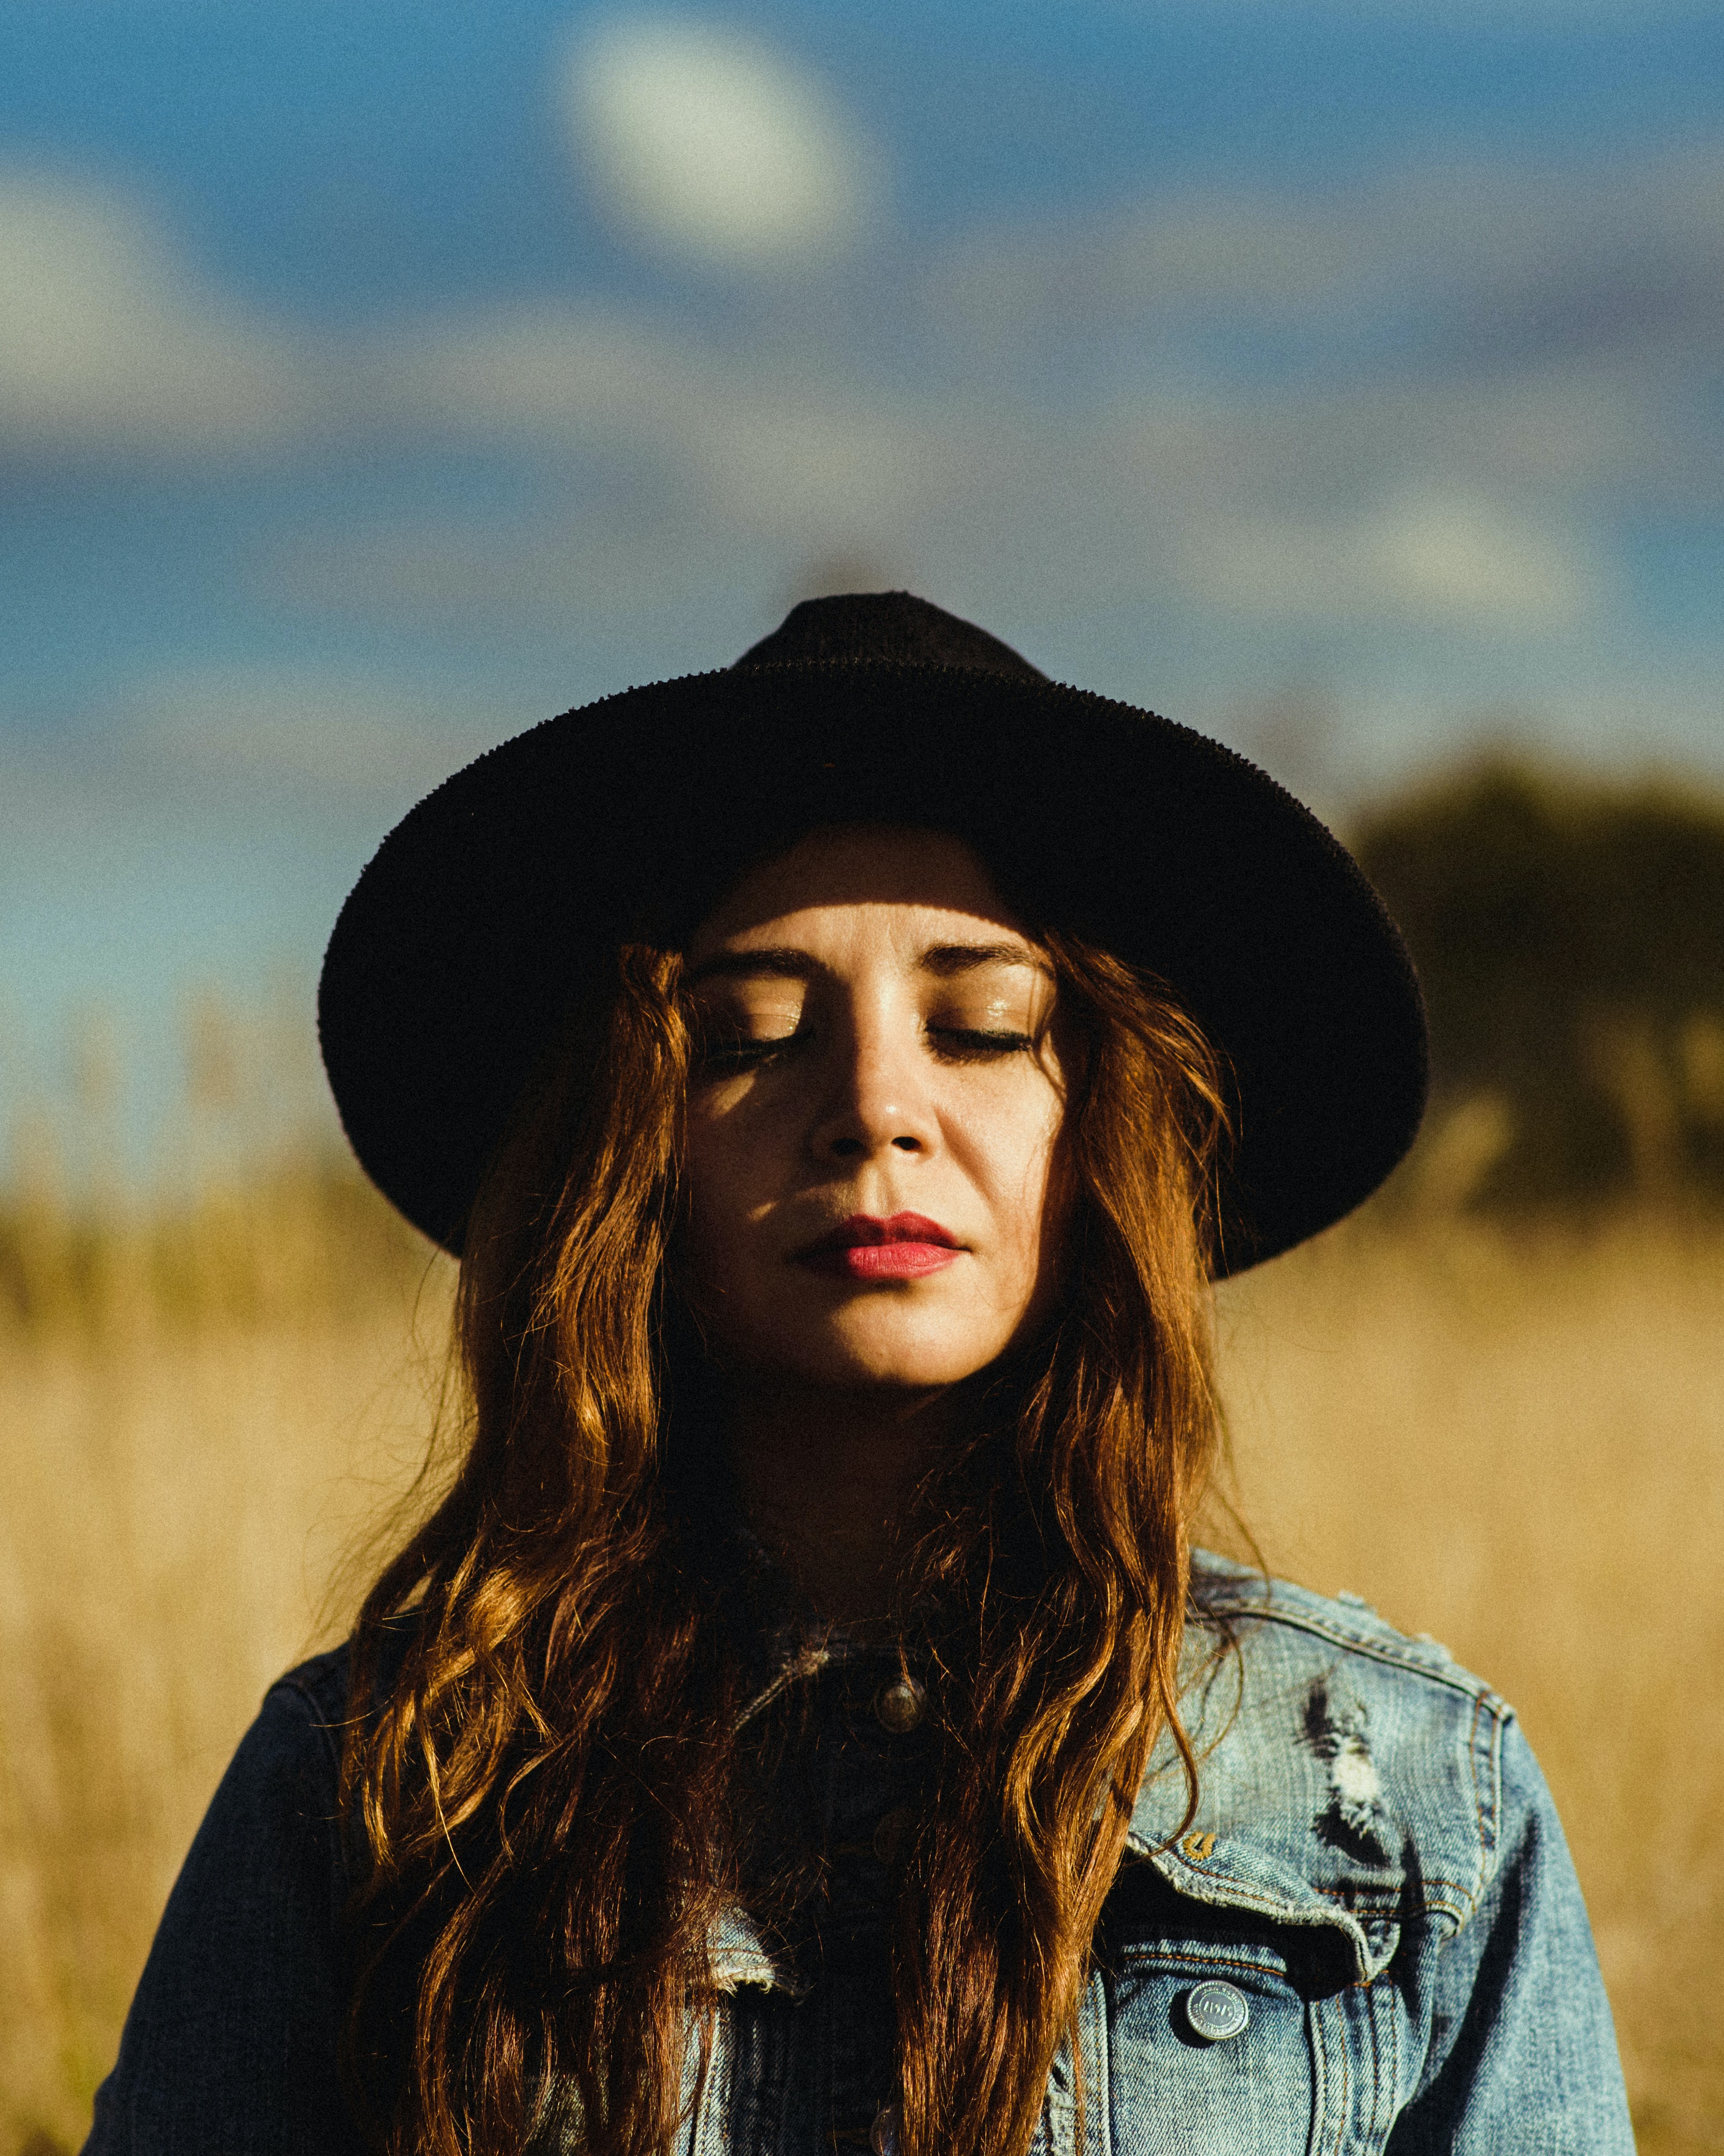 selective focus photography of woman closing her eyes wearing black sun hat and blue denim jacket